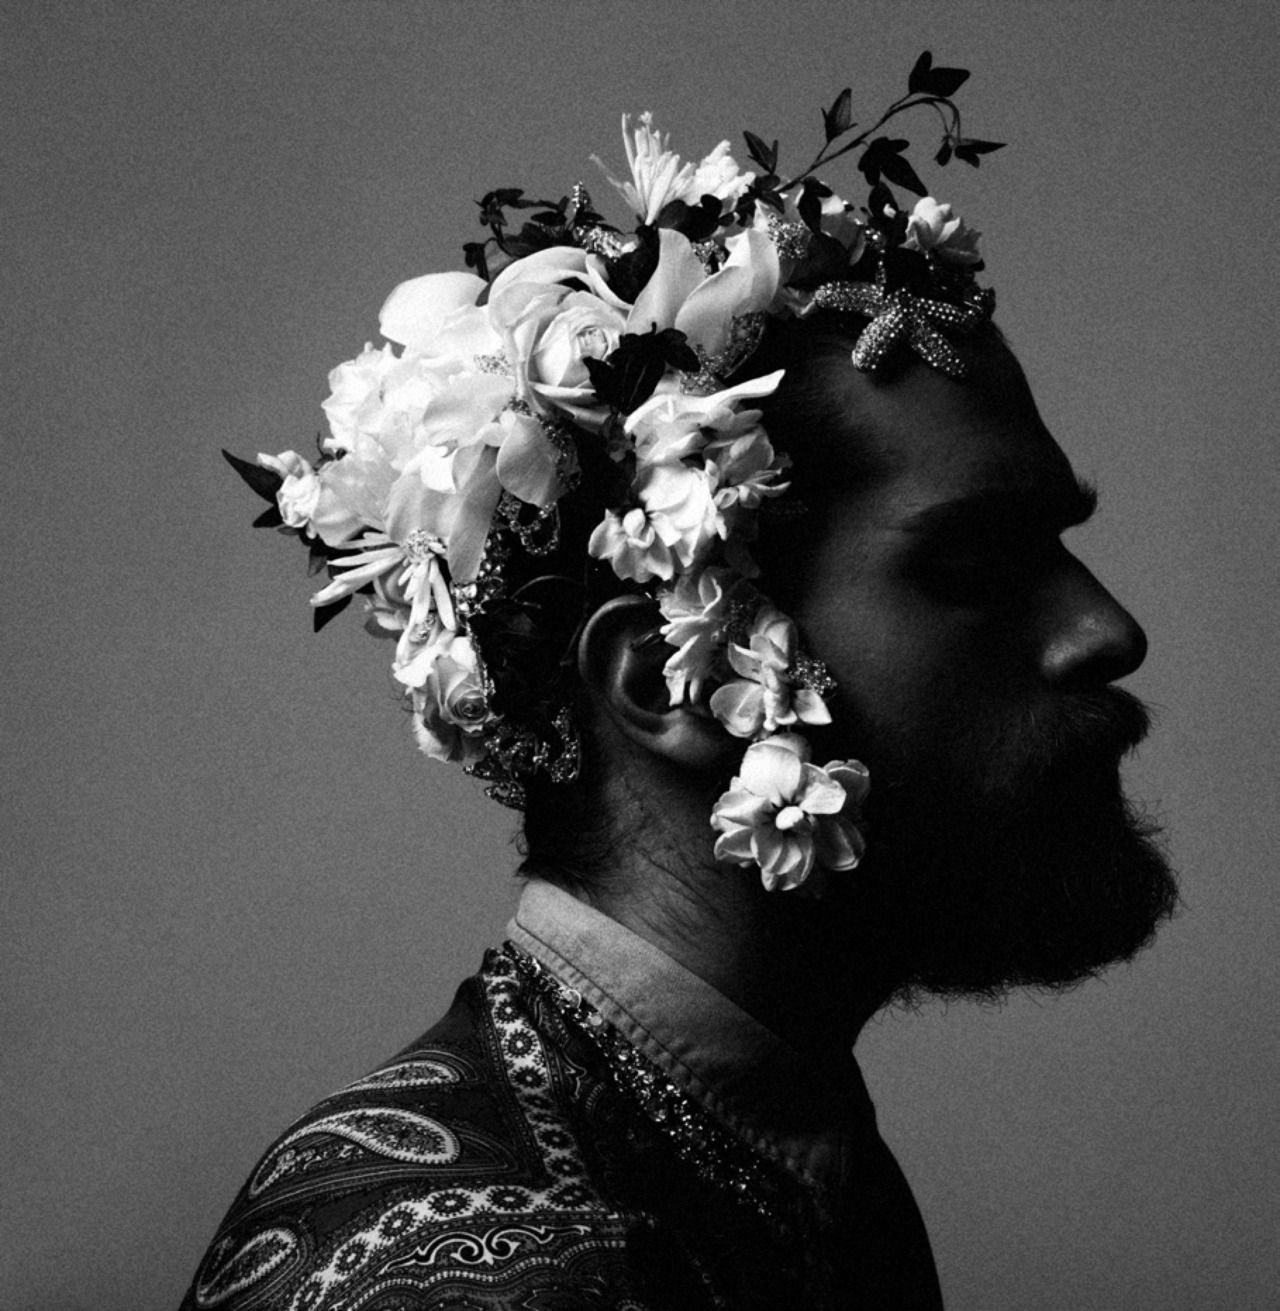 He Wore Flowers In His Hair X Photographed By Stratis Fashion